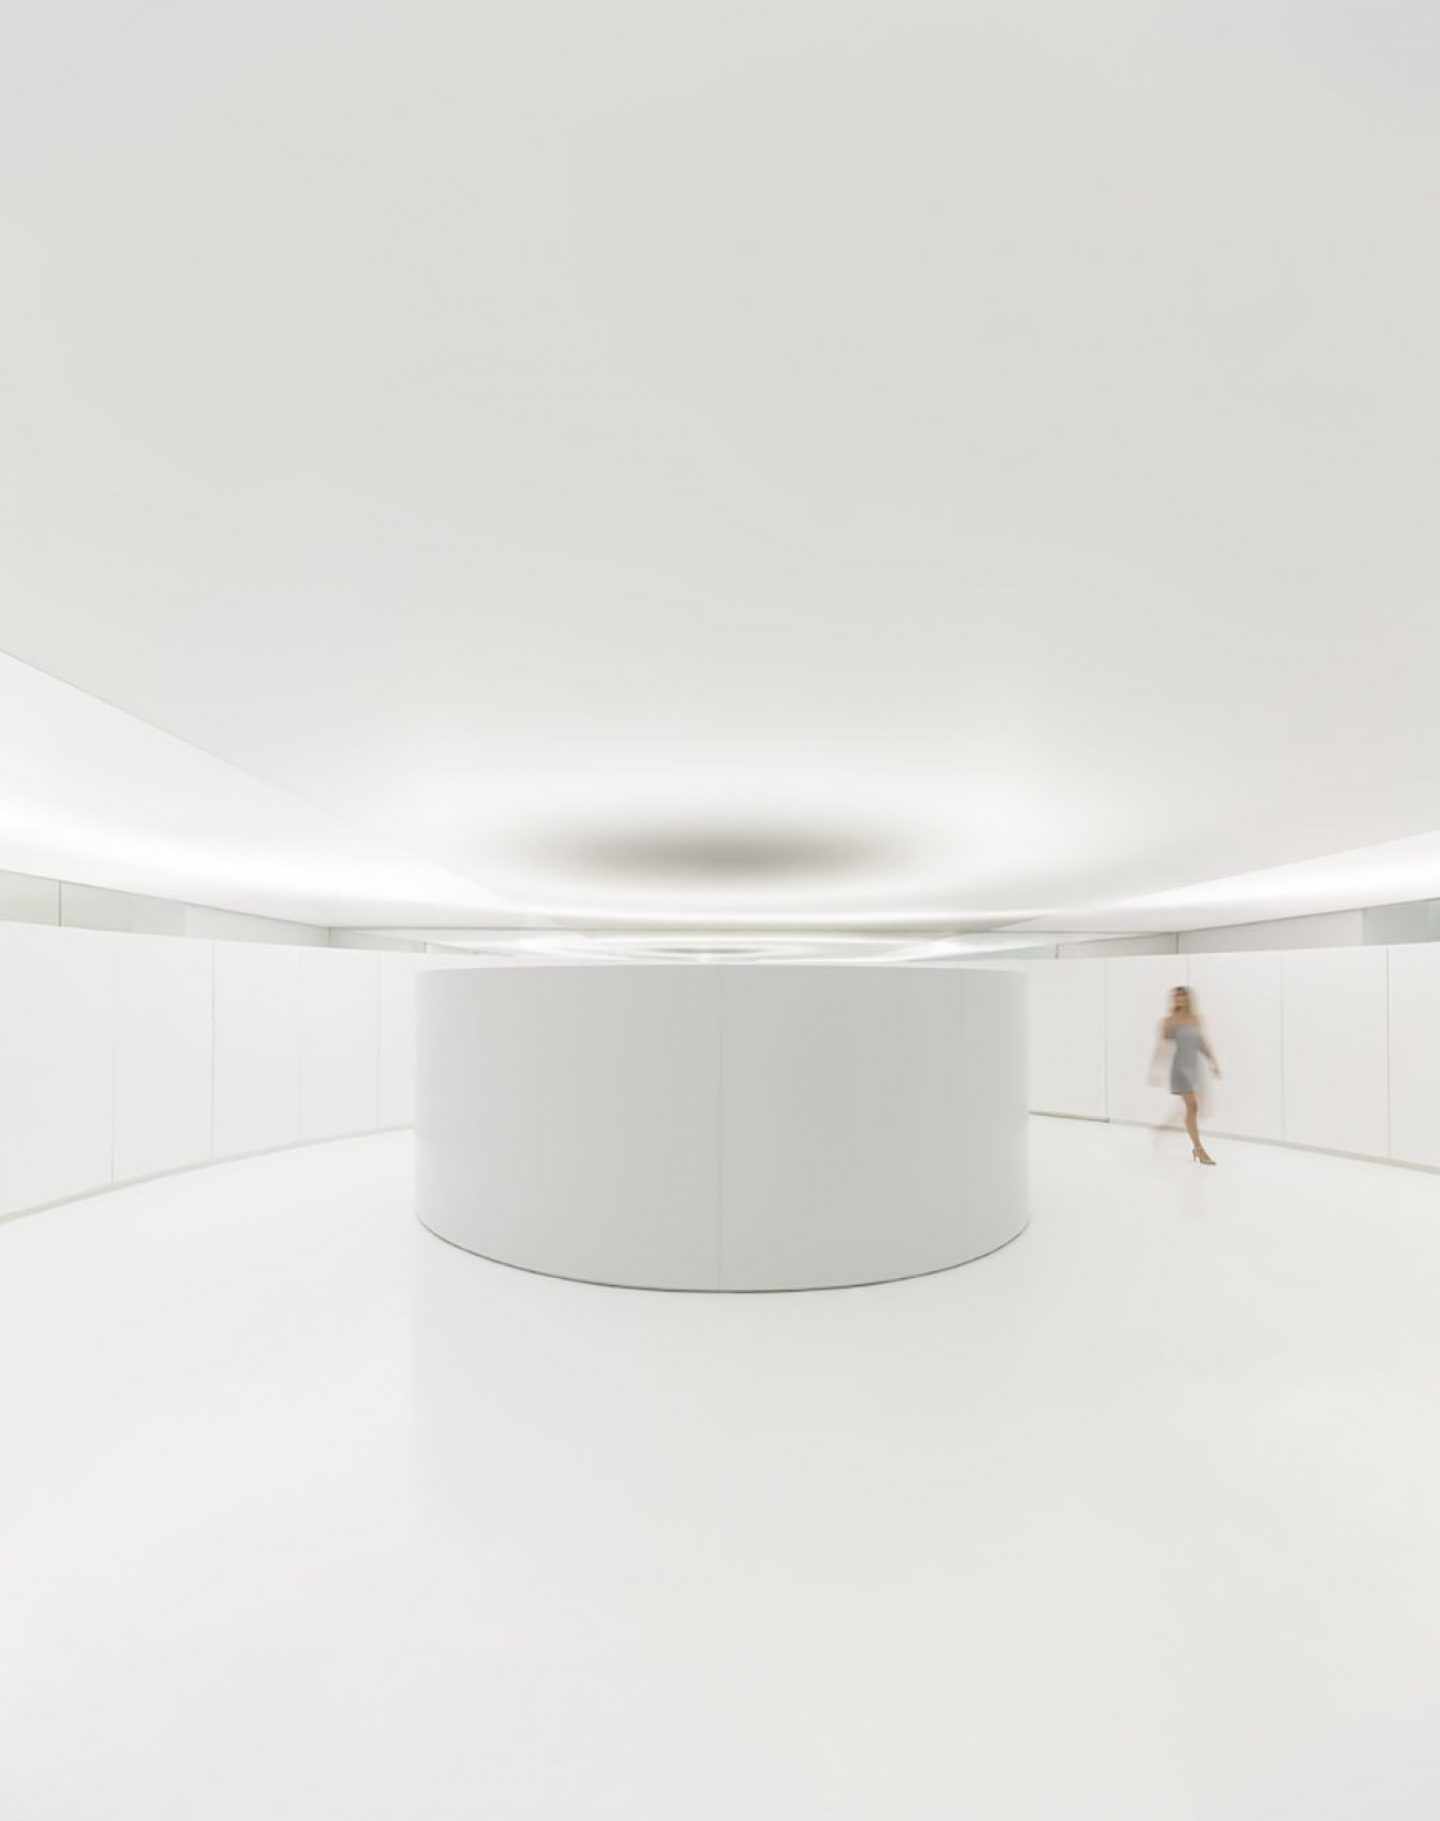 iGNANT_Architecture_PETRA_The_Stone_Atelier_Fran_Silvestre_Arquitectos_5